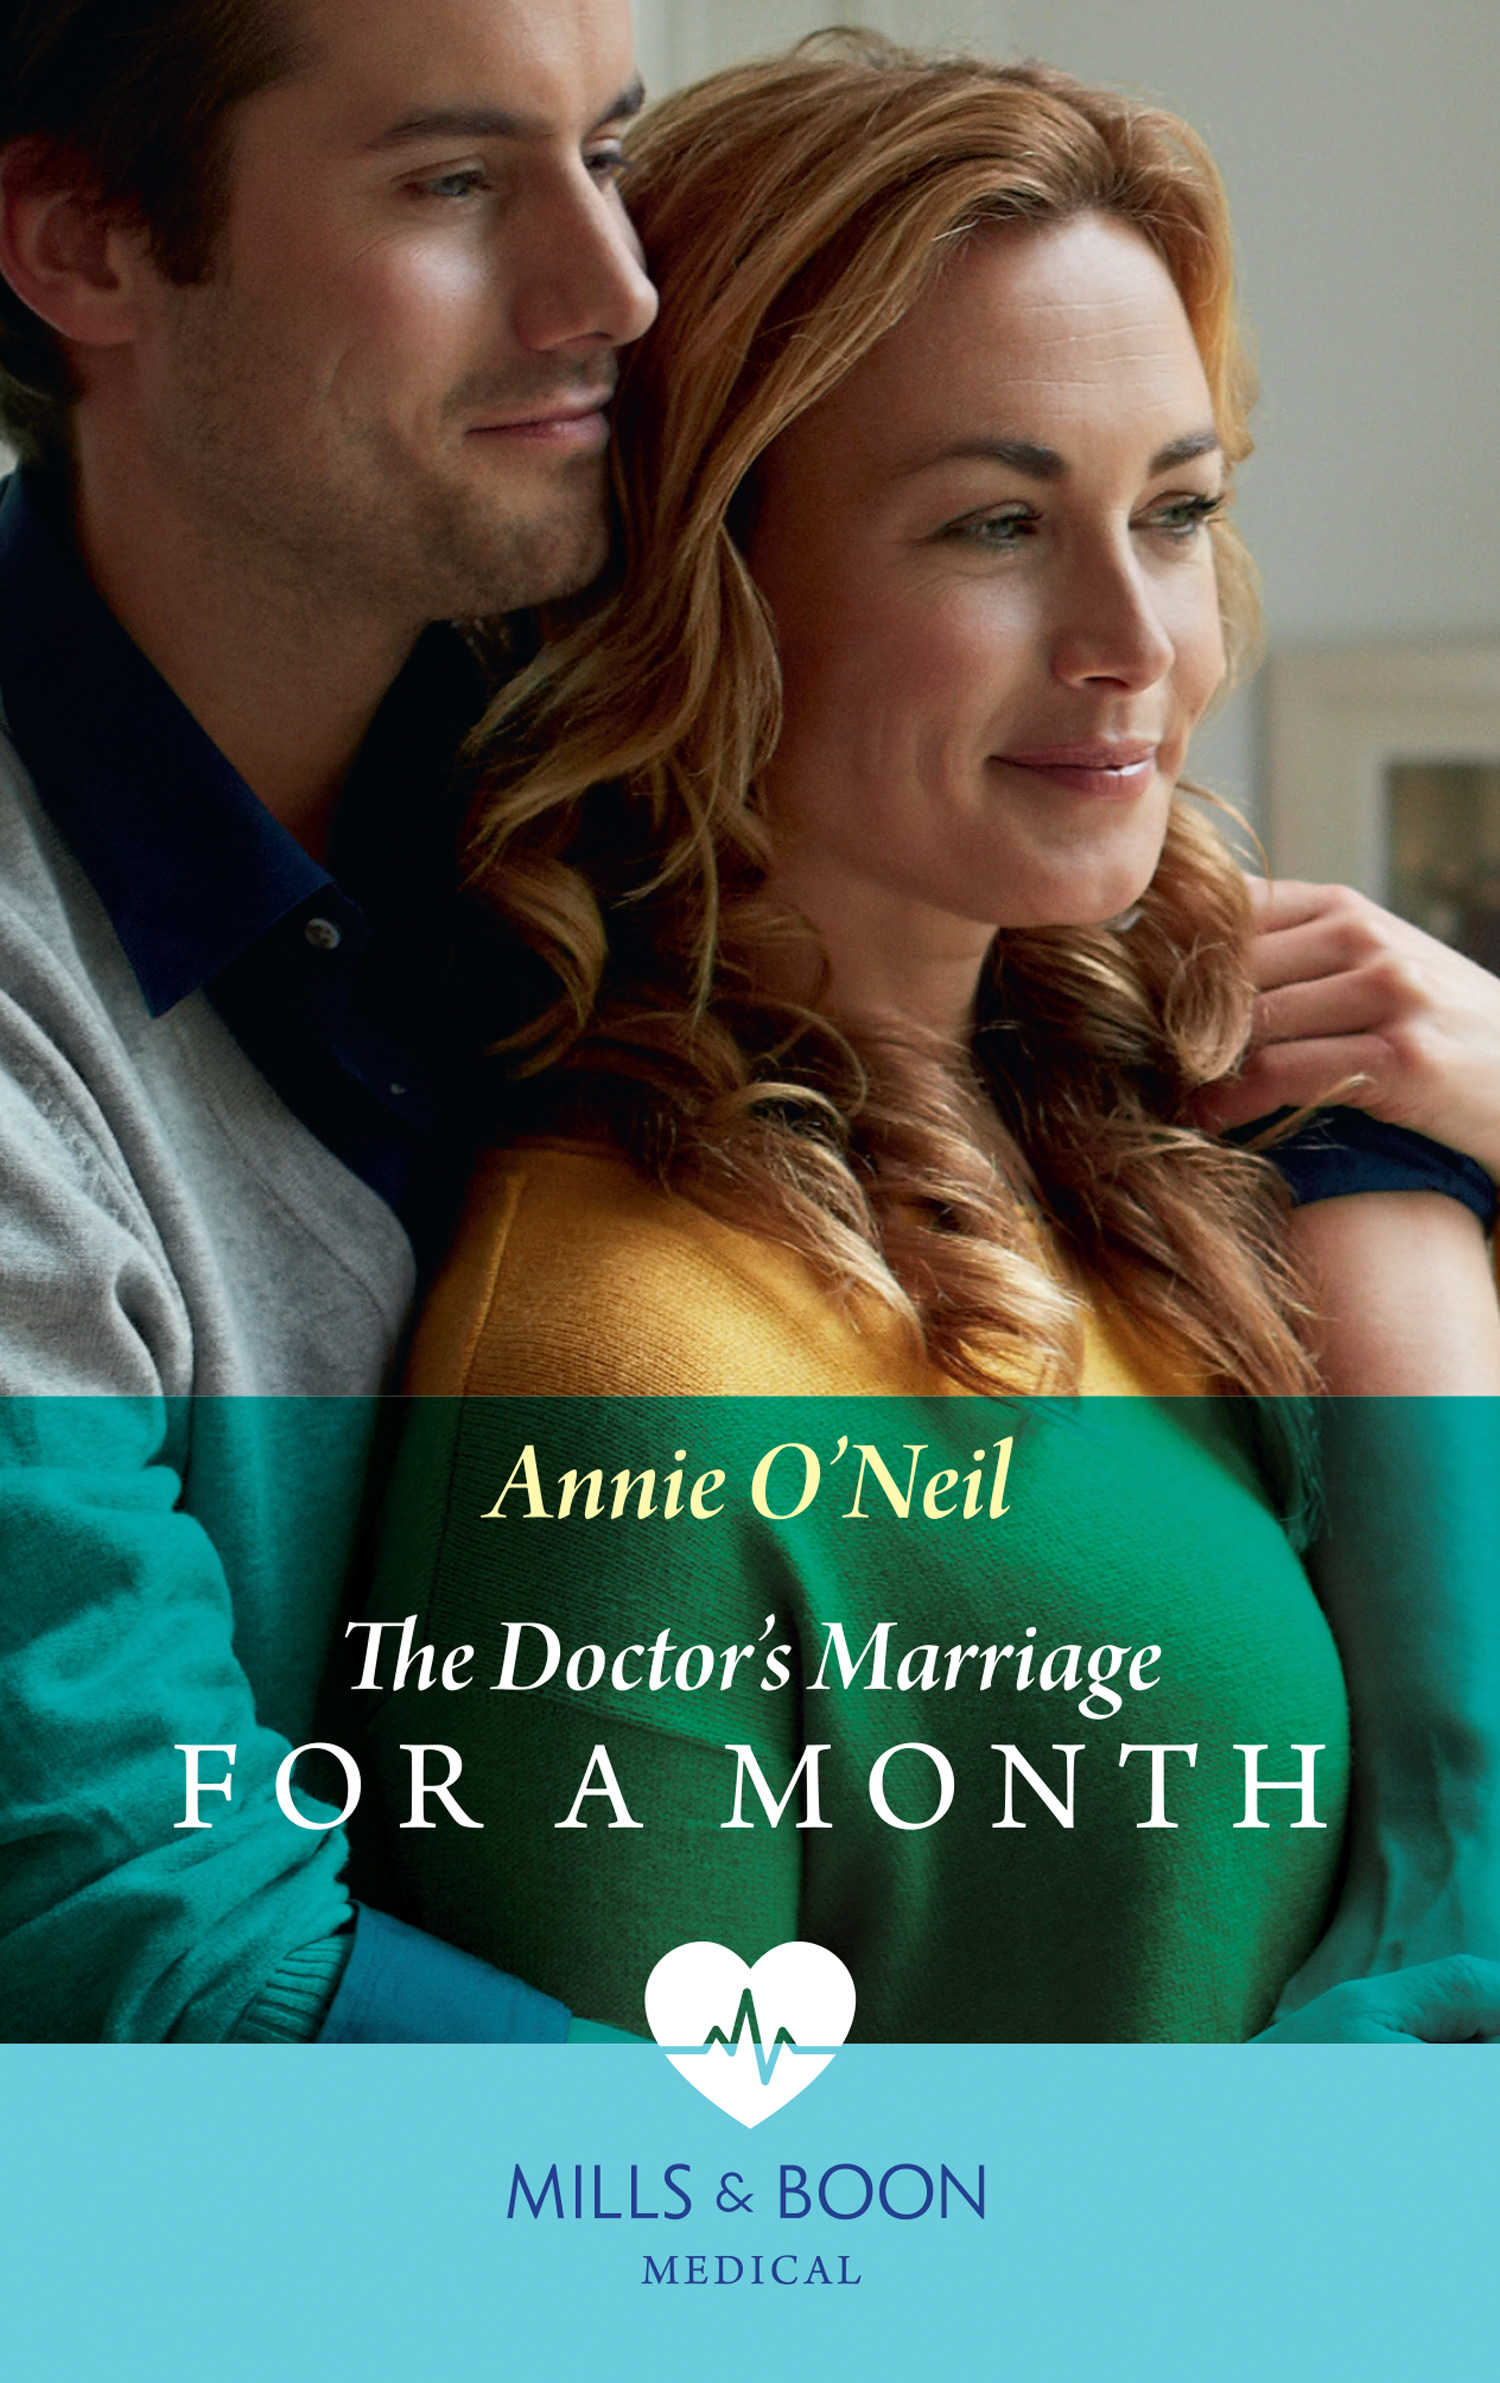 The Doctor's Marriage For A Month